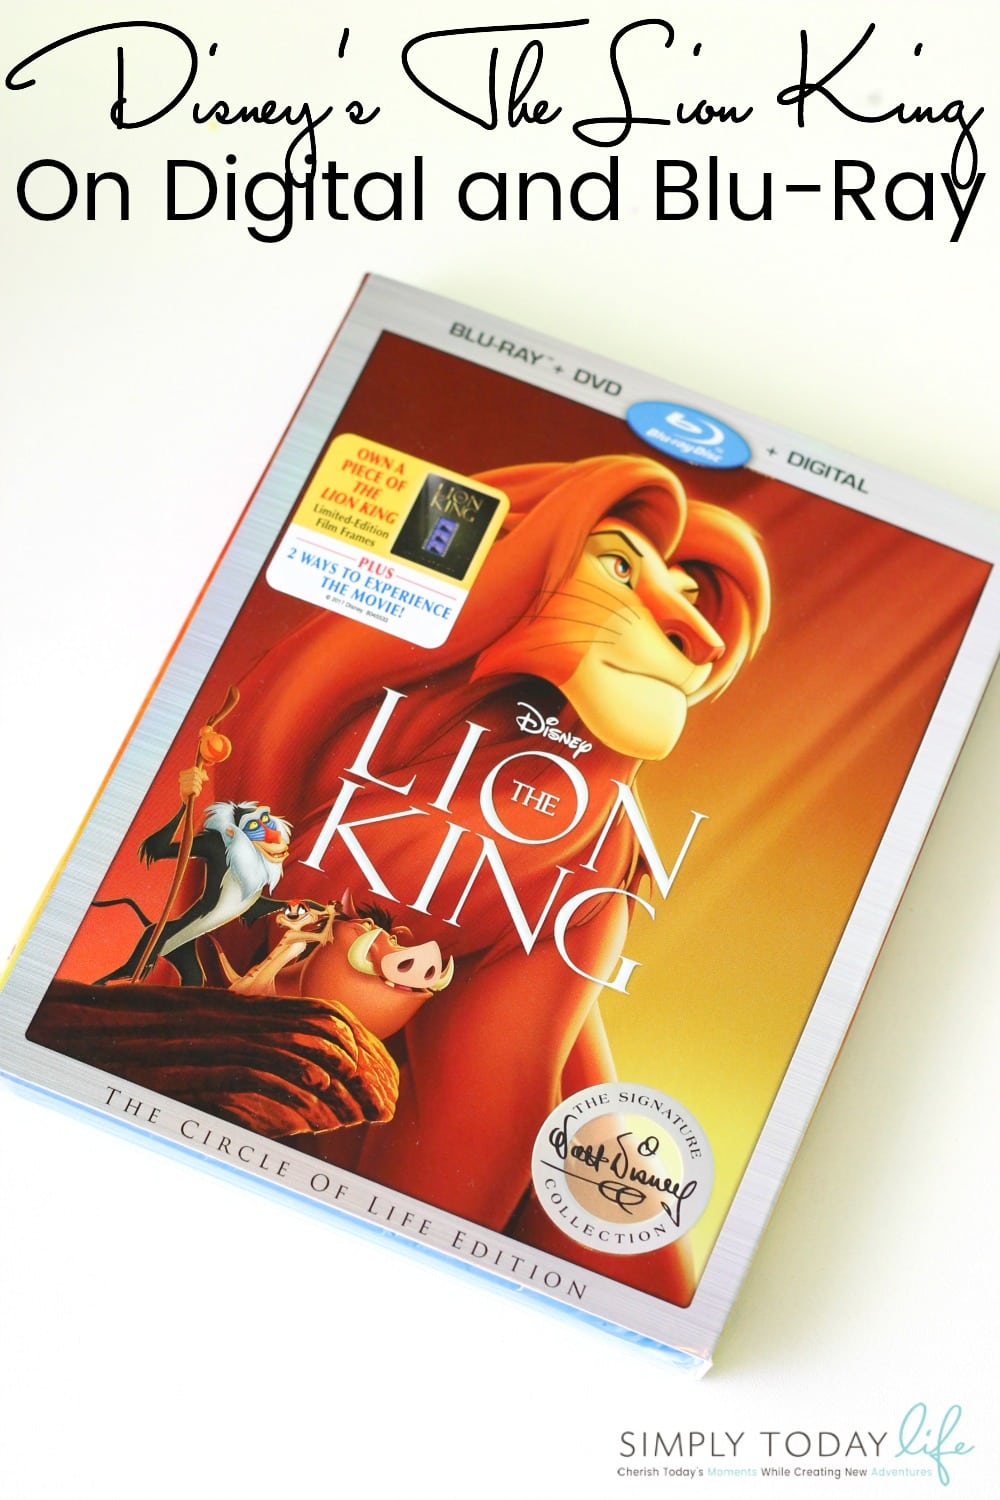 Disney's The Lion King On Digital and Blu-Ray DVD Details - Simply Today Life